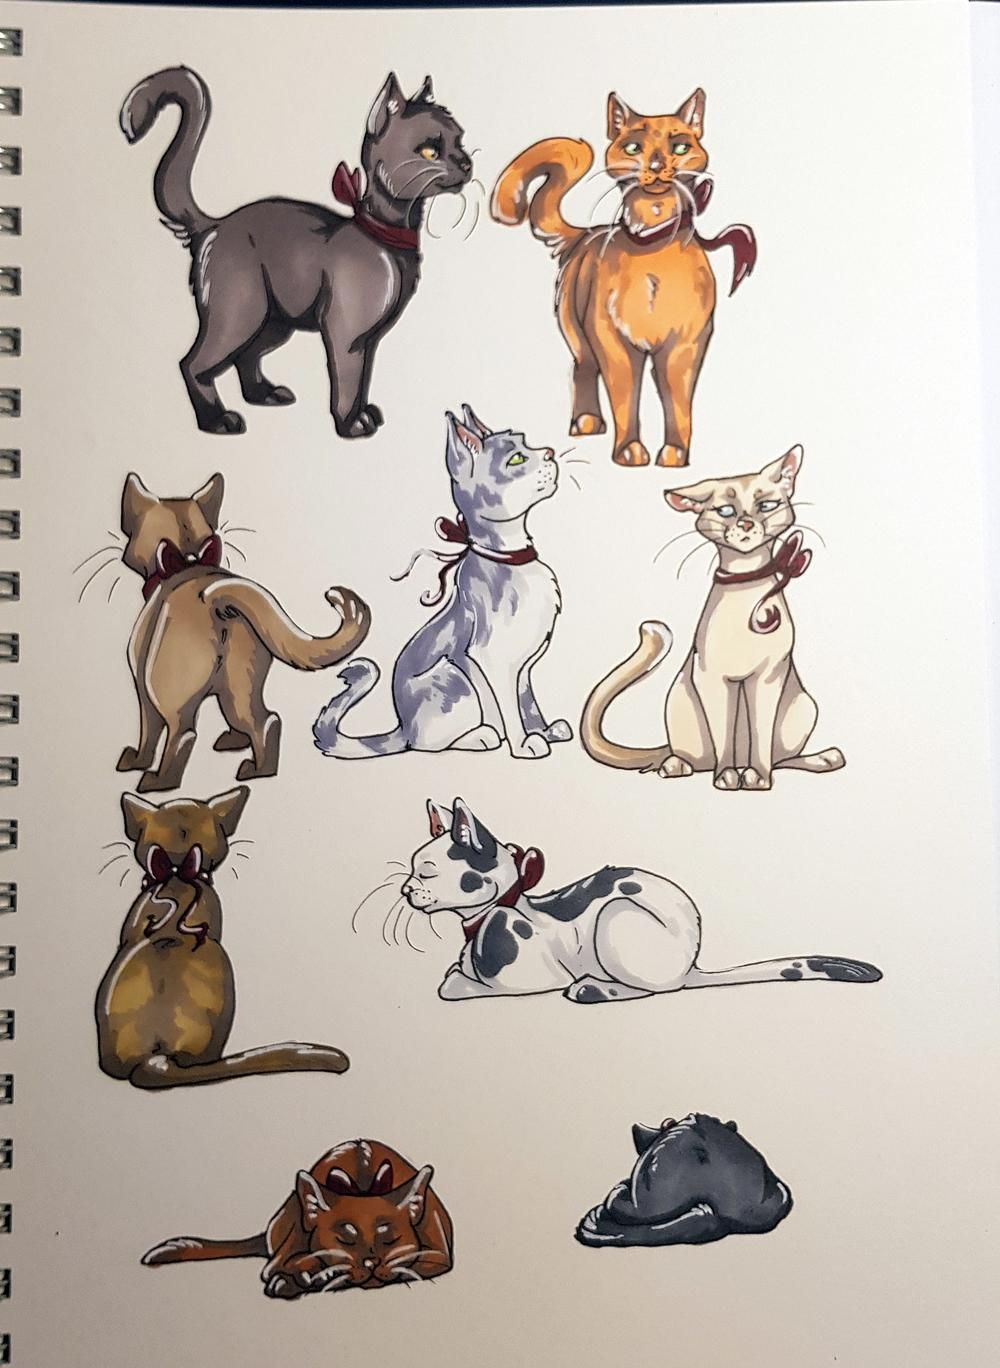 Sketchbook Cats - image 3 - student project